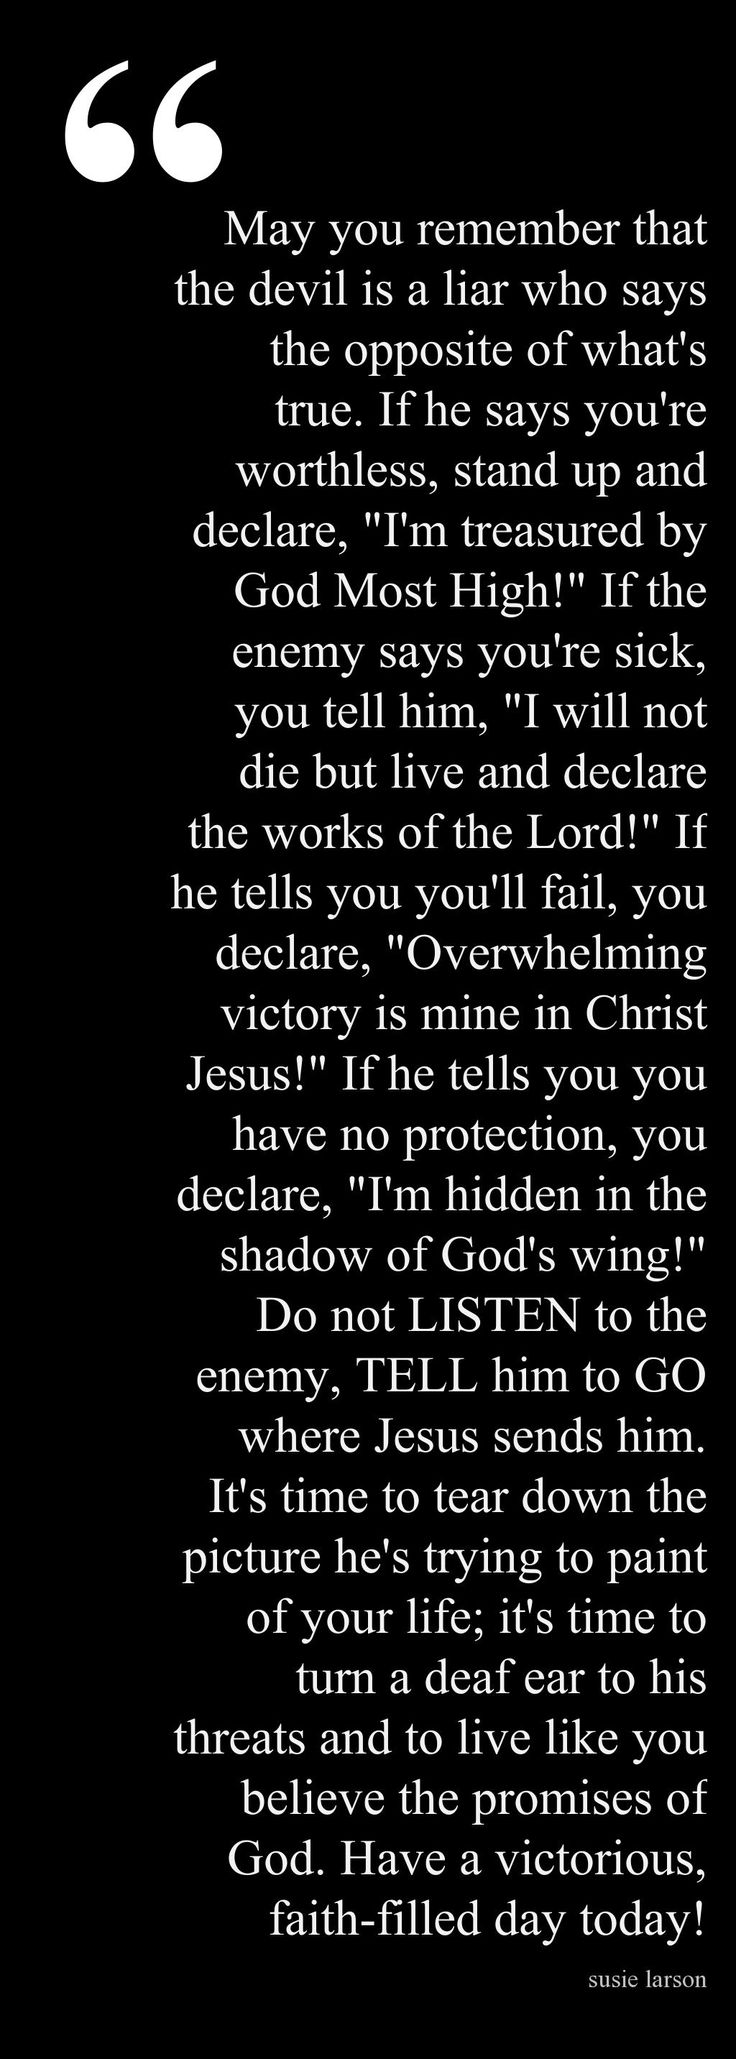 Actually kind a cried reading this. God is so good and he cares so much for you and I. He will never leave you, he will never hurt you, he is a forever friend who you can count on. He only wants what is best for us.